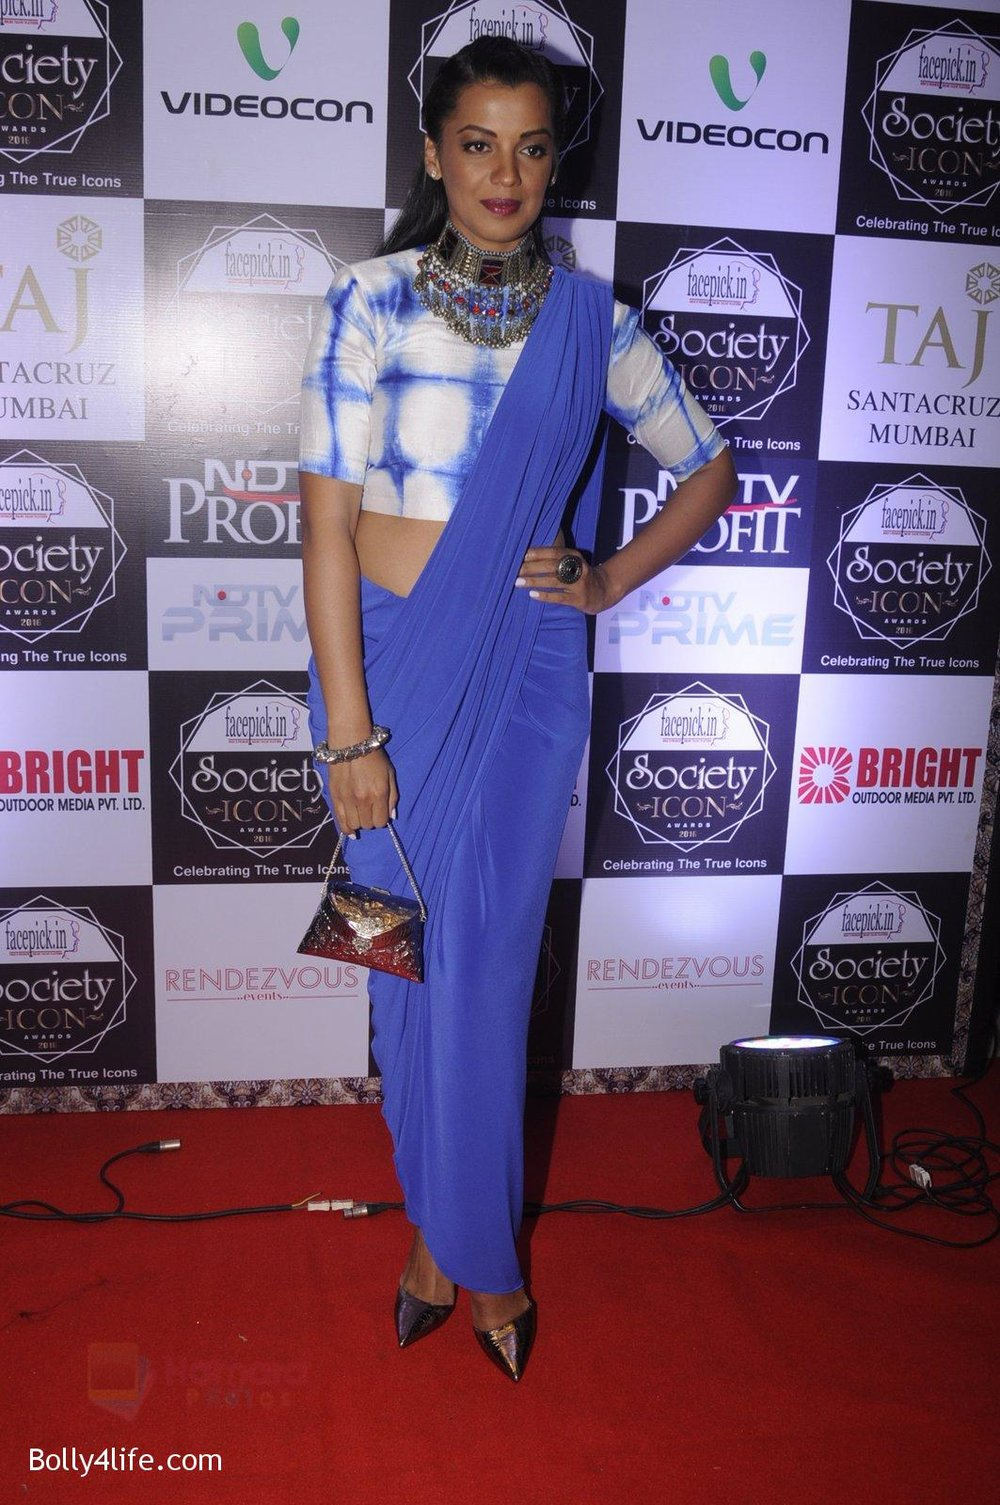 Mugdha-Godse-at-Society-Icon-Awards-on-2nd-Oct-2016-69.jpg